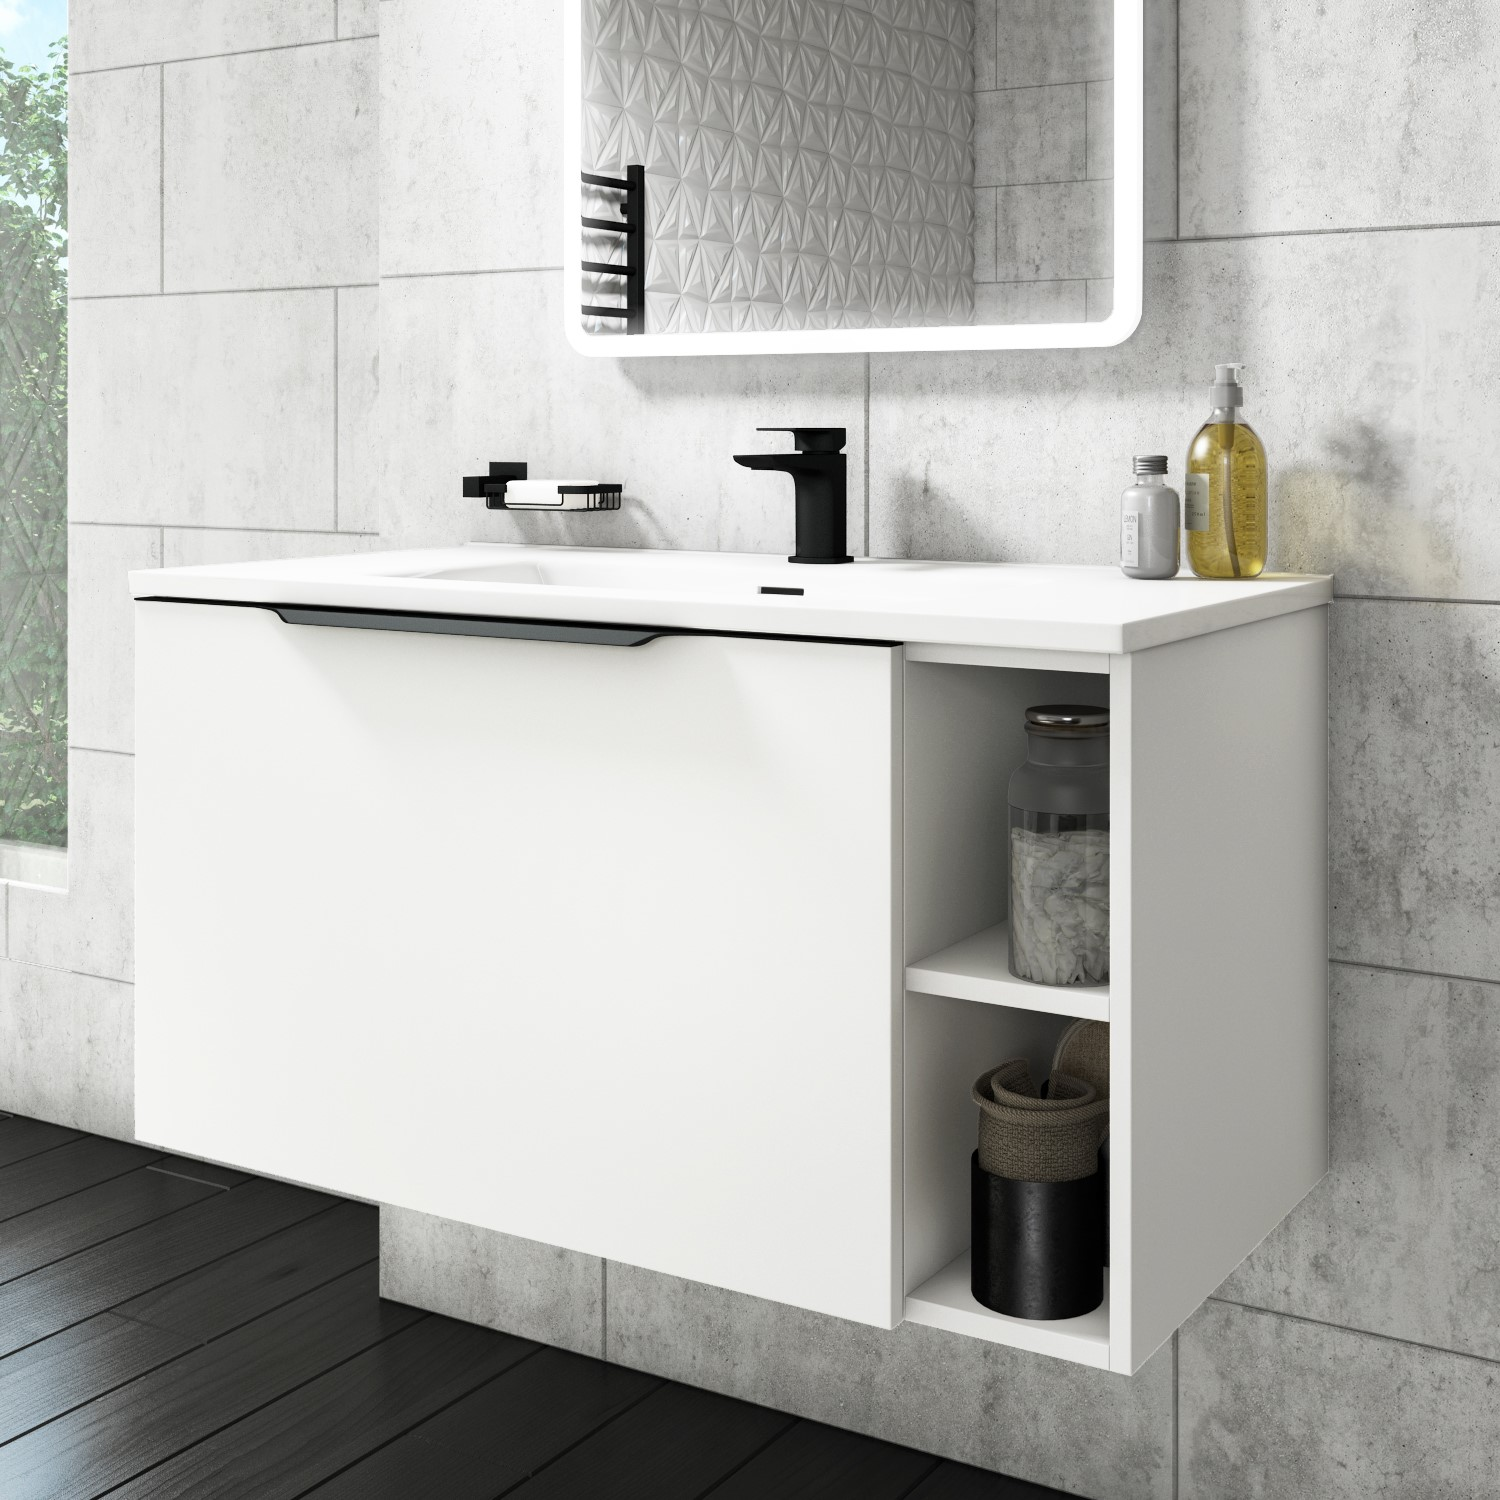 900mm Wall Hung Vanity Unit With Basin Matt White With Black Handles Sion Furniture123